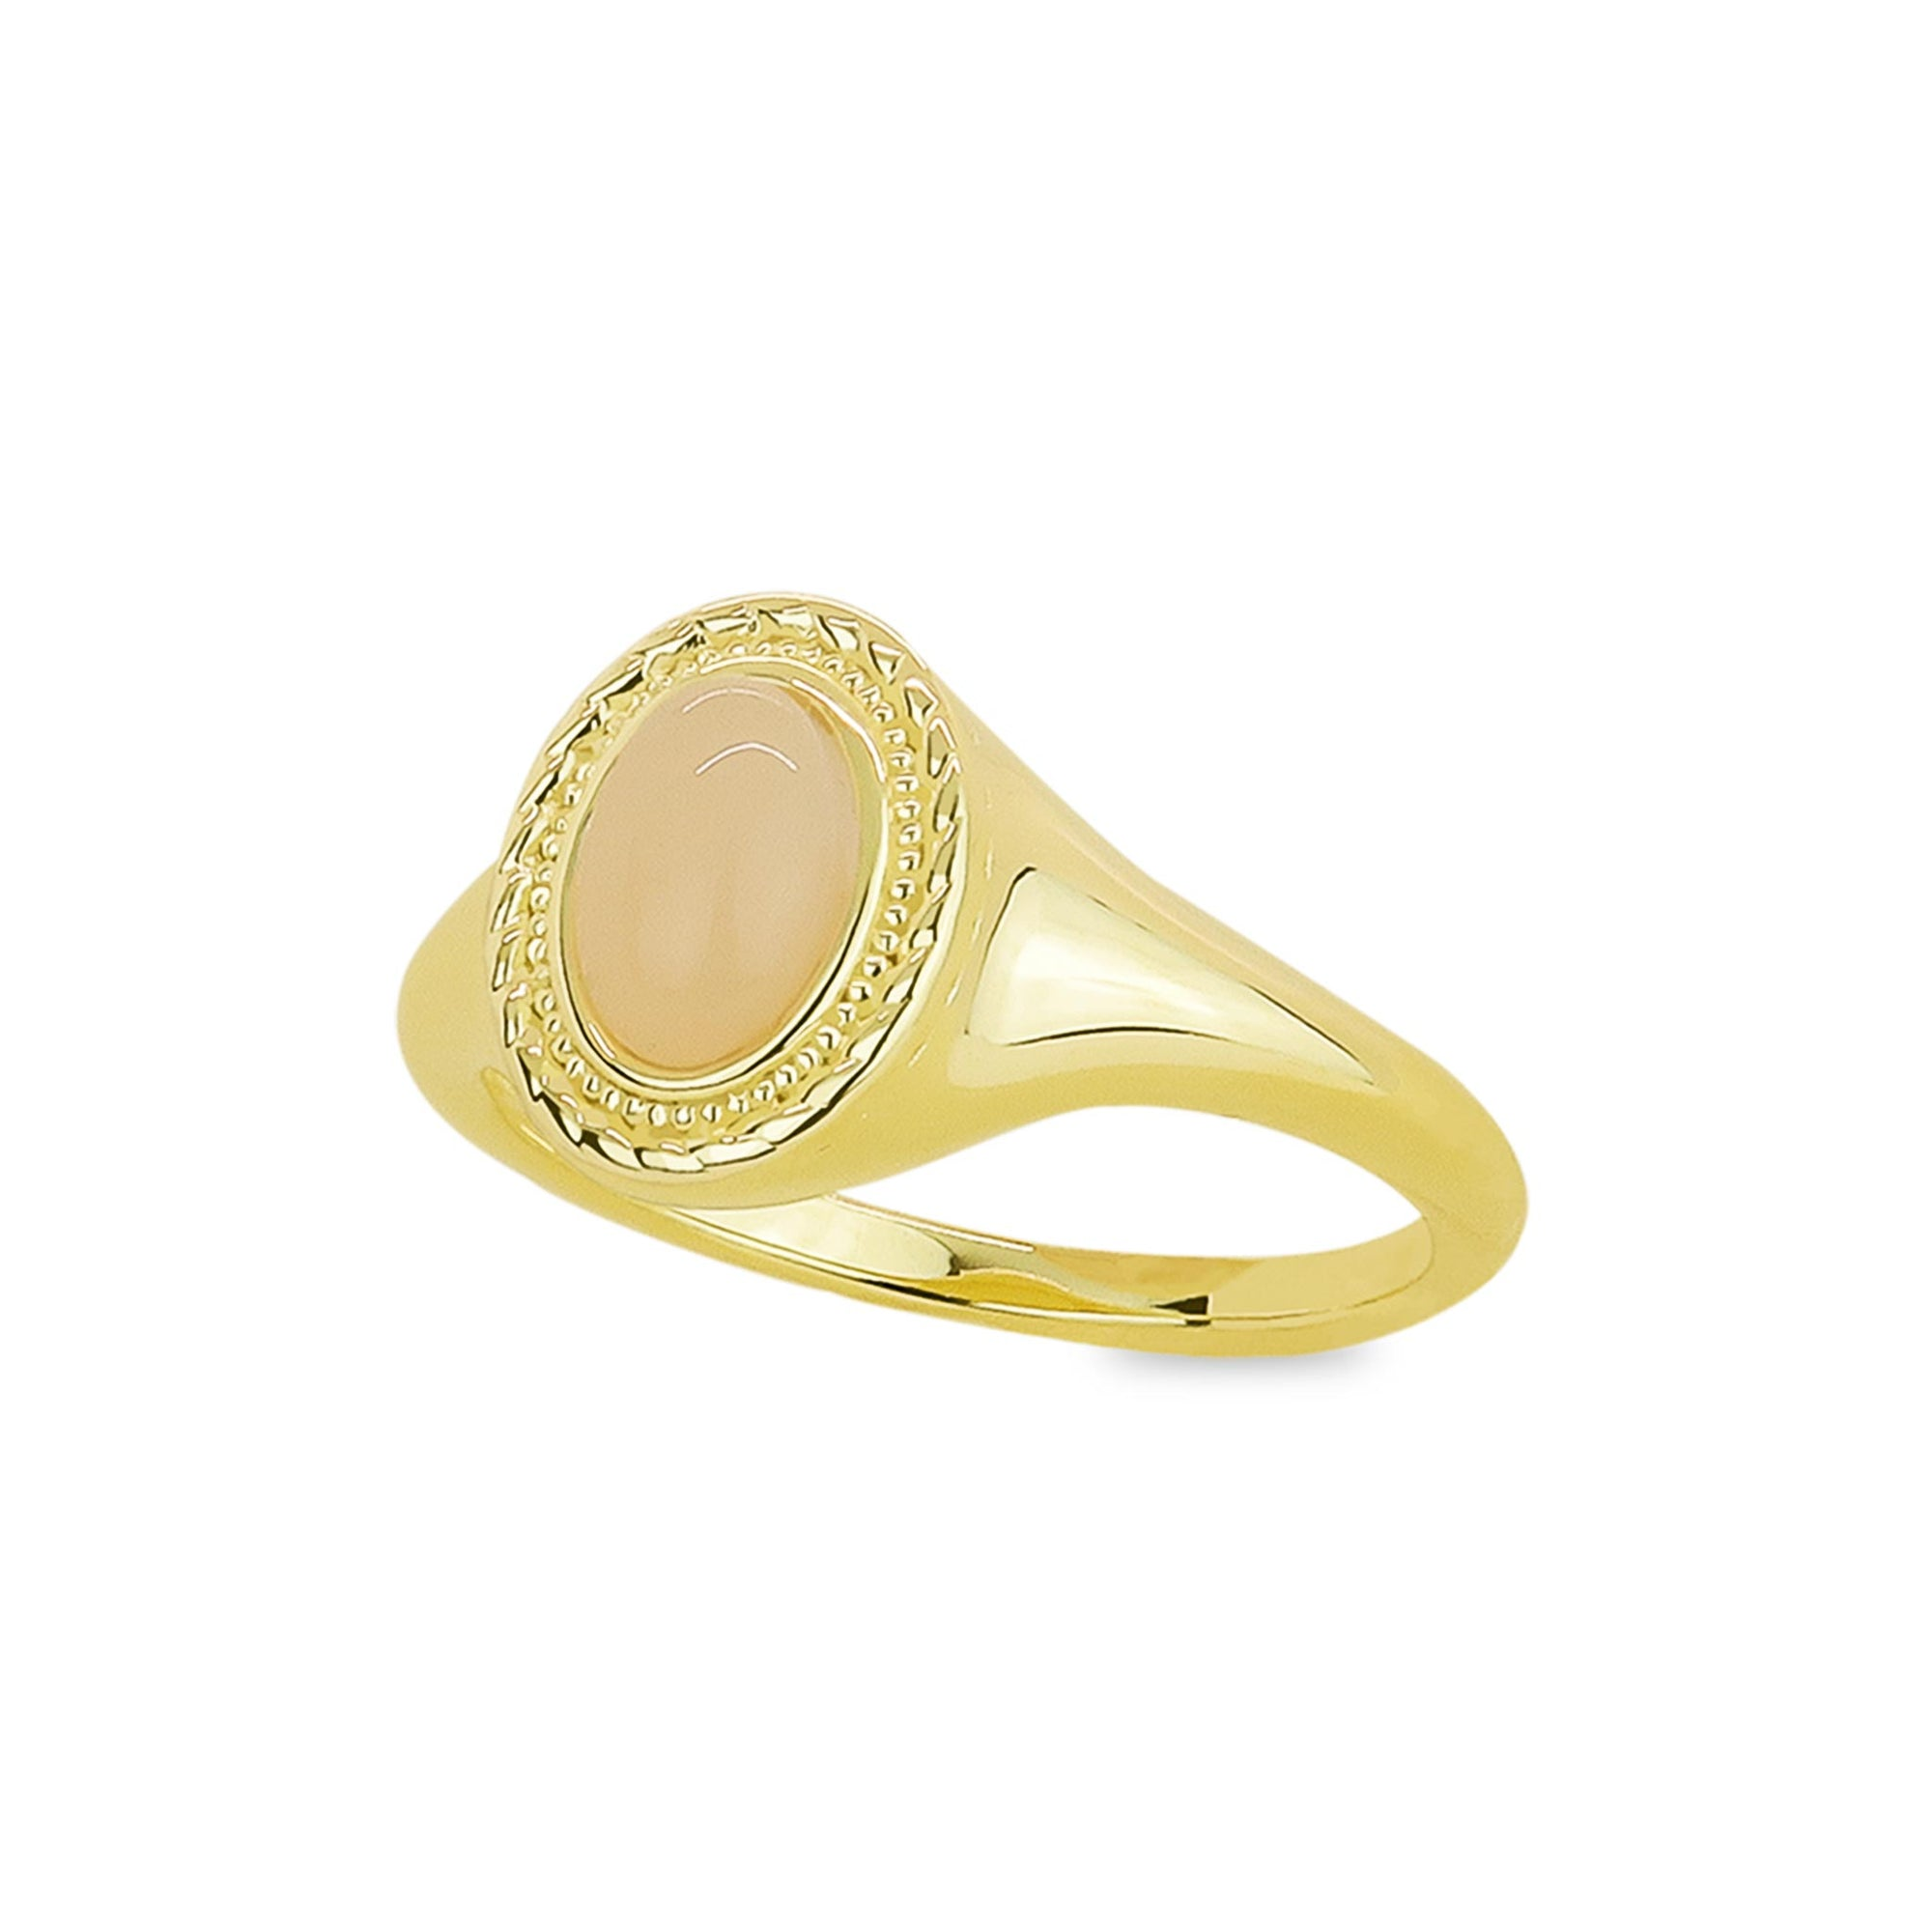 Del Mar Ornate Ring - Evertess Jewelry